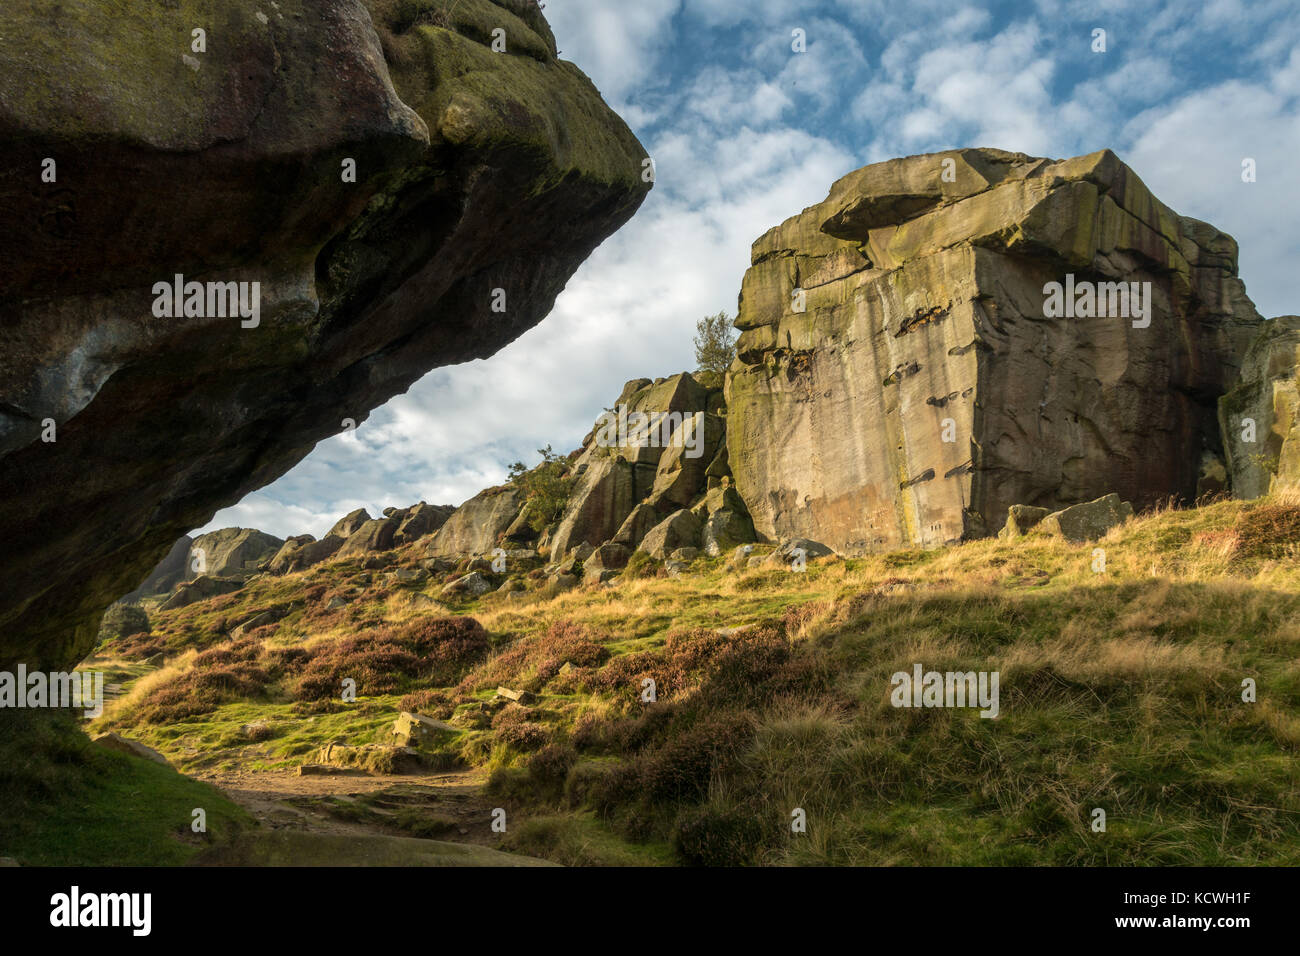 Unusual view of the famous landmark of the Cow and Calf Rocks, Ilkley Moor, Yorkshire - Stock Image